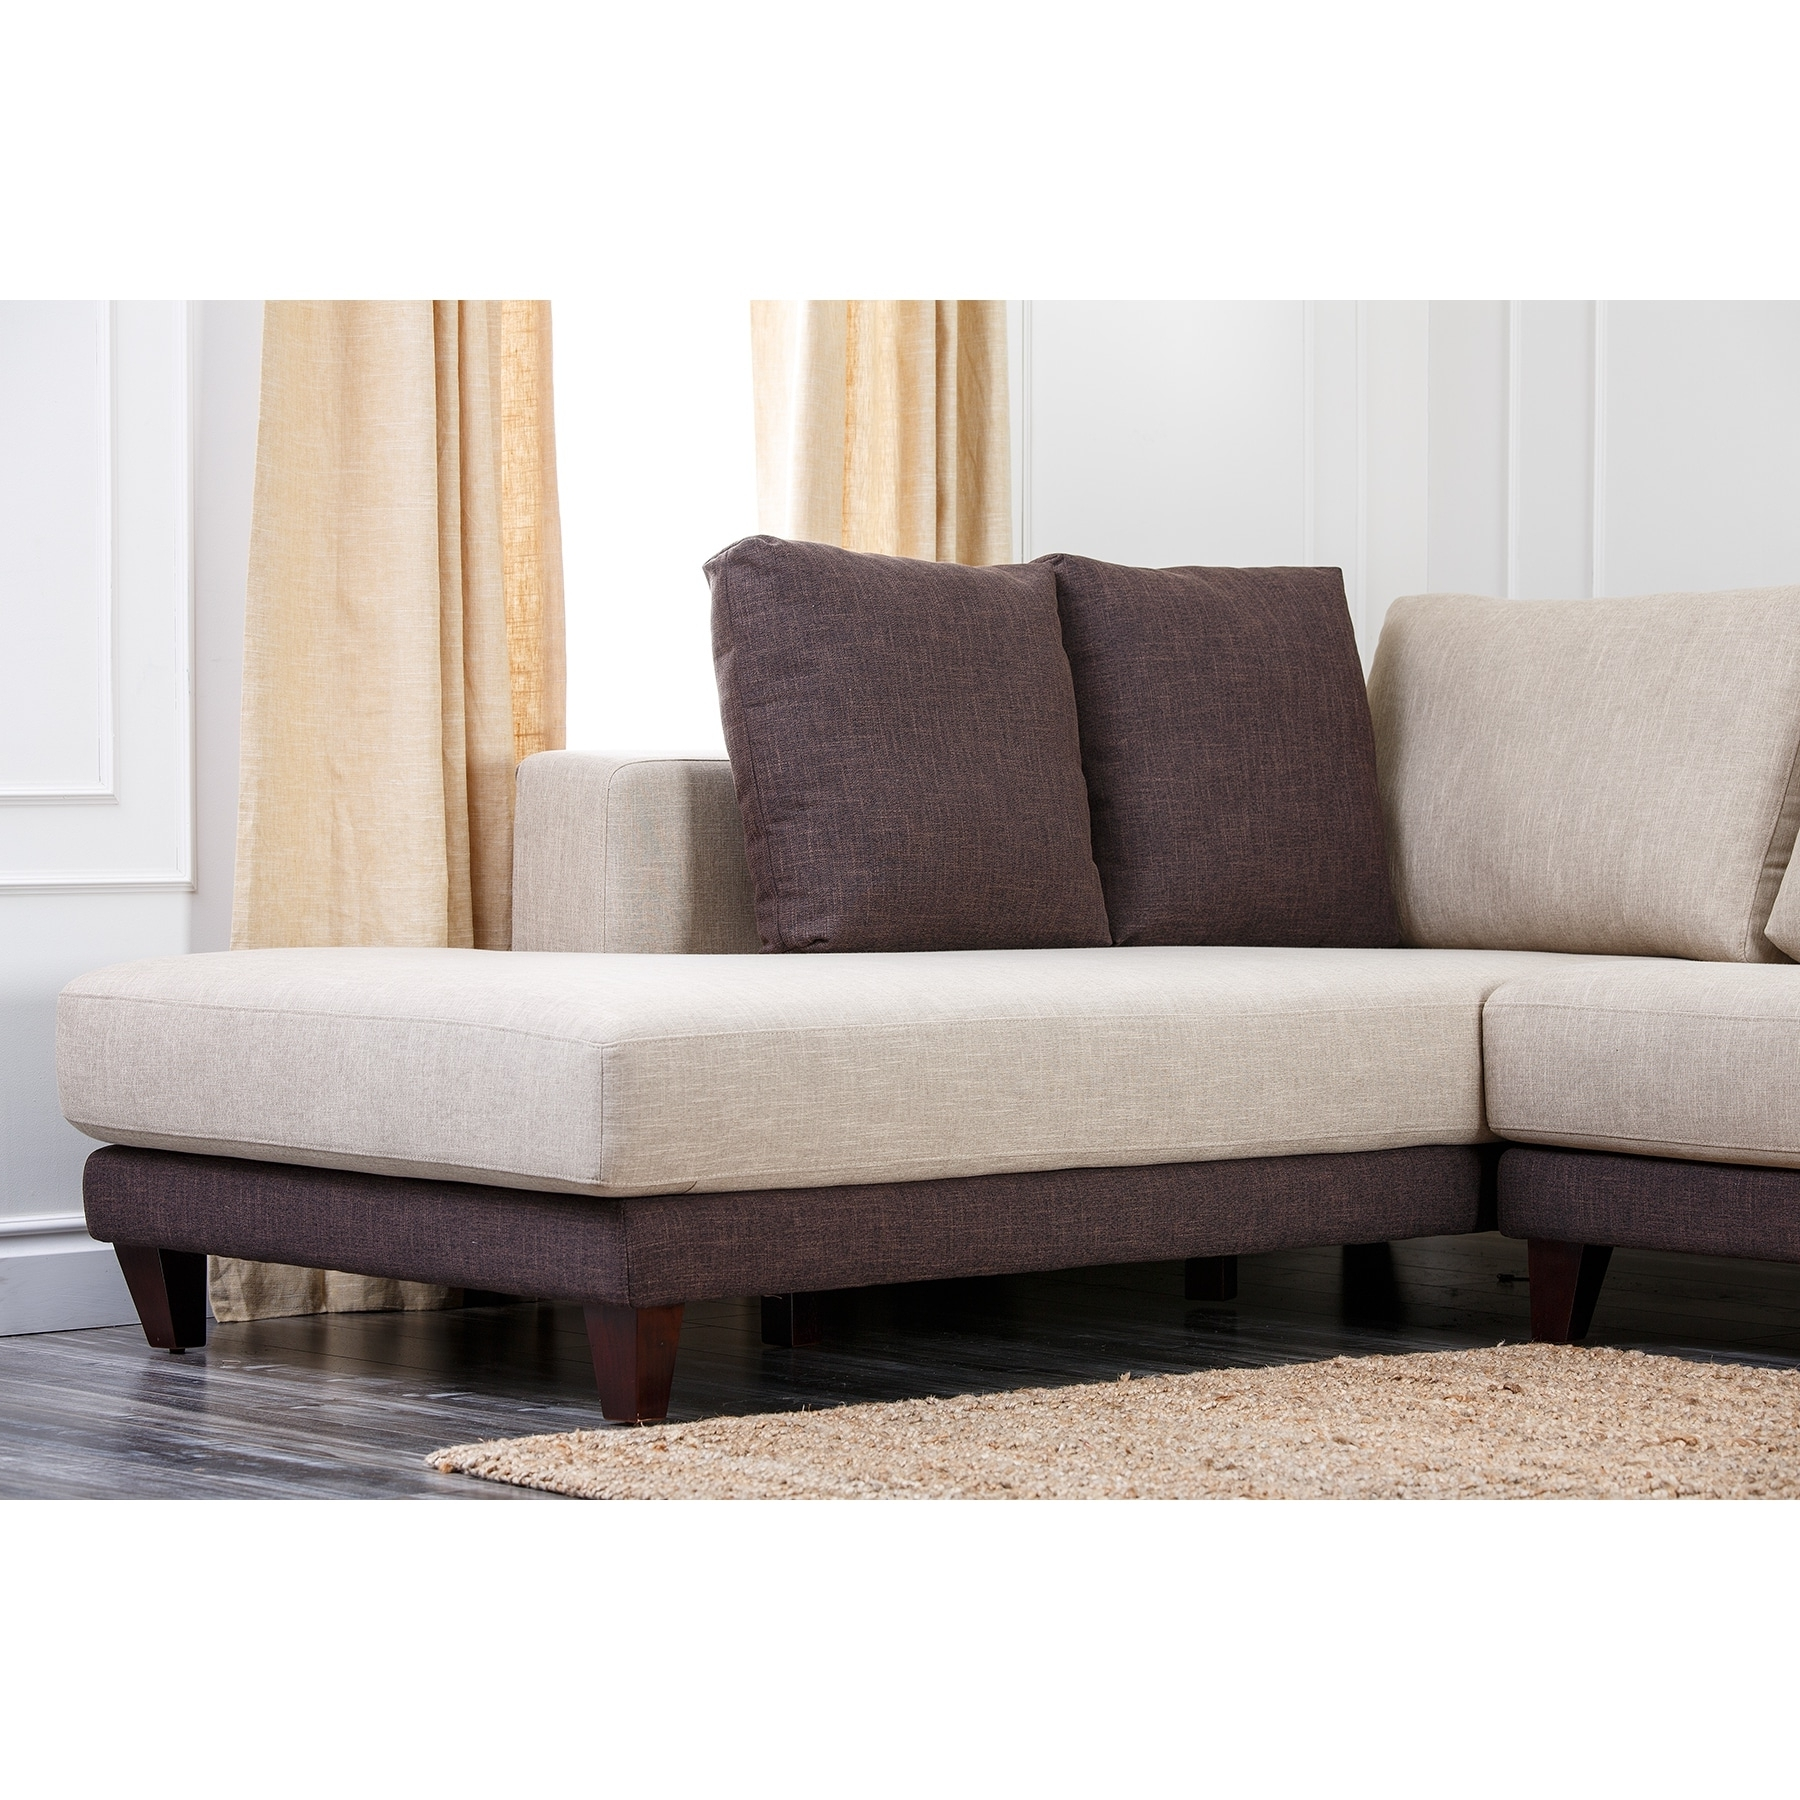 Best And Newest Abbyson 'verona' Fabric Sectional Sofa – Free Shipping Today Inside Fabric Sectional Sofas (View 2 of 20)